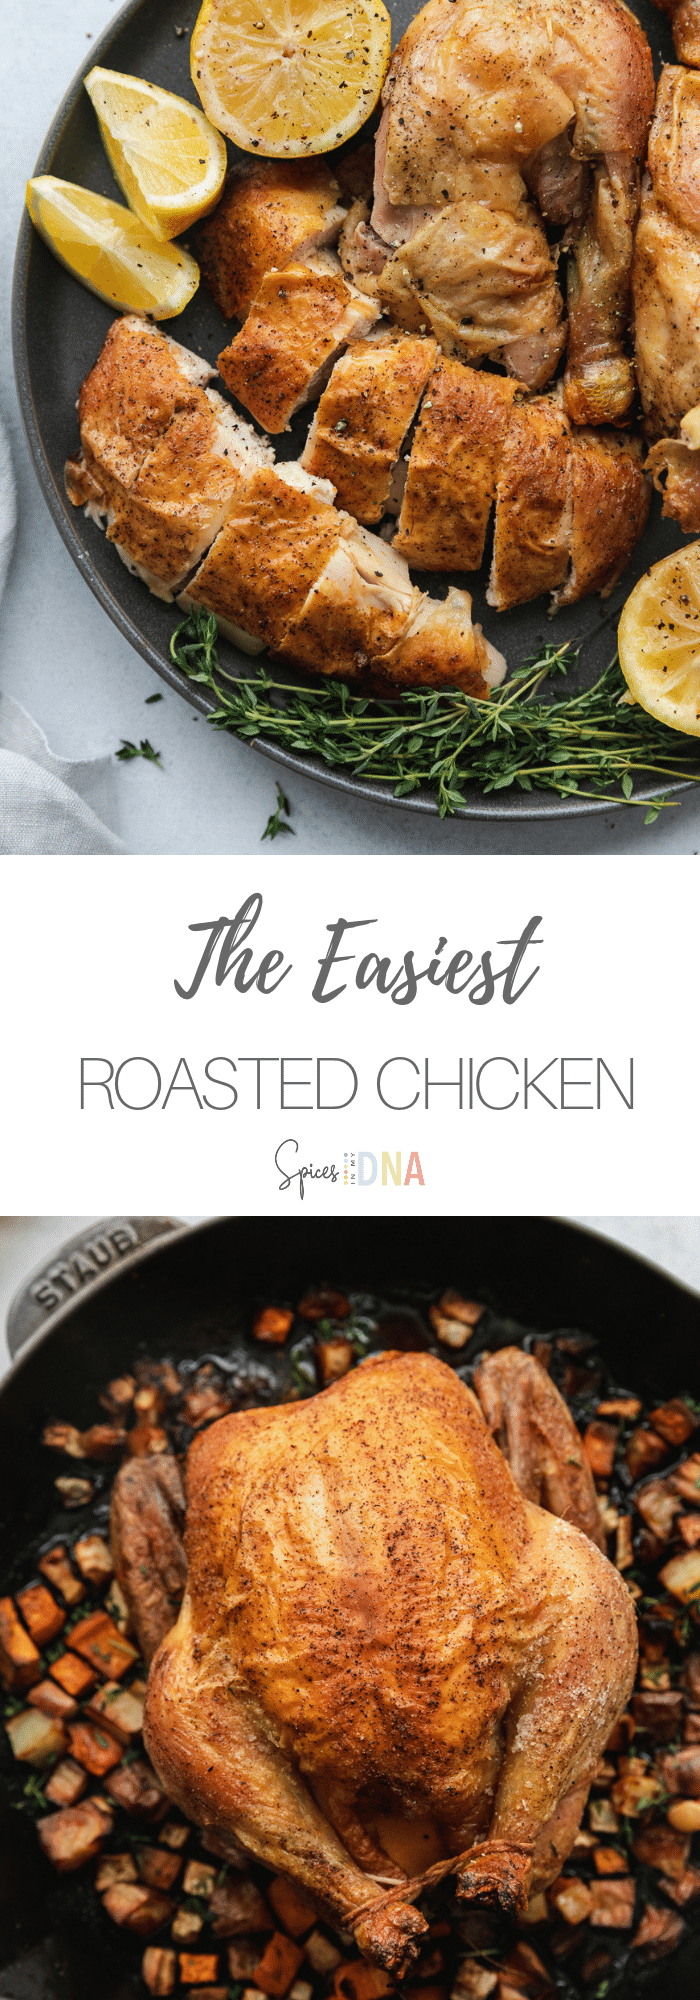 This Whole Roasted Chicken is the easiest, most flavorful method to roast a whole chicken. I rub it generously with salt and pepper, stuff it with lemons and thyme, and roast it over a bed of root vegetables for extra flavor. It couldn't be simpler or more foolproof, and it's so versatile! #wholeroastedchicken #roastedchicken #easy #chickenrecipe #easydinner #mealprep